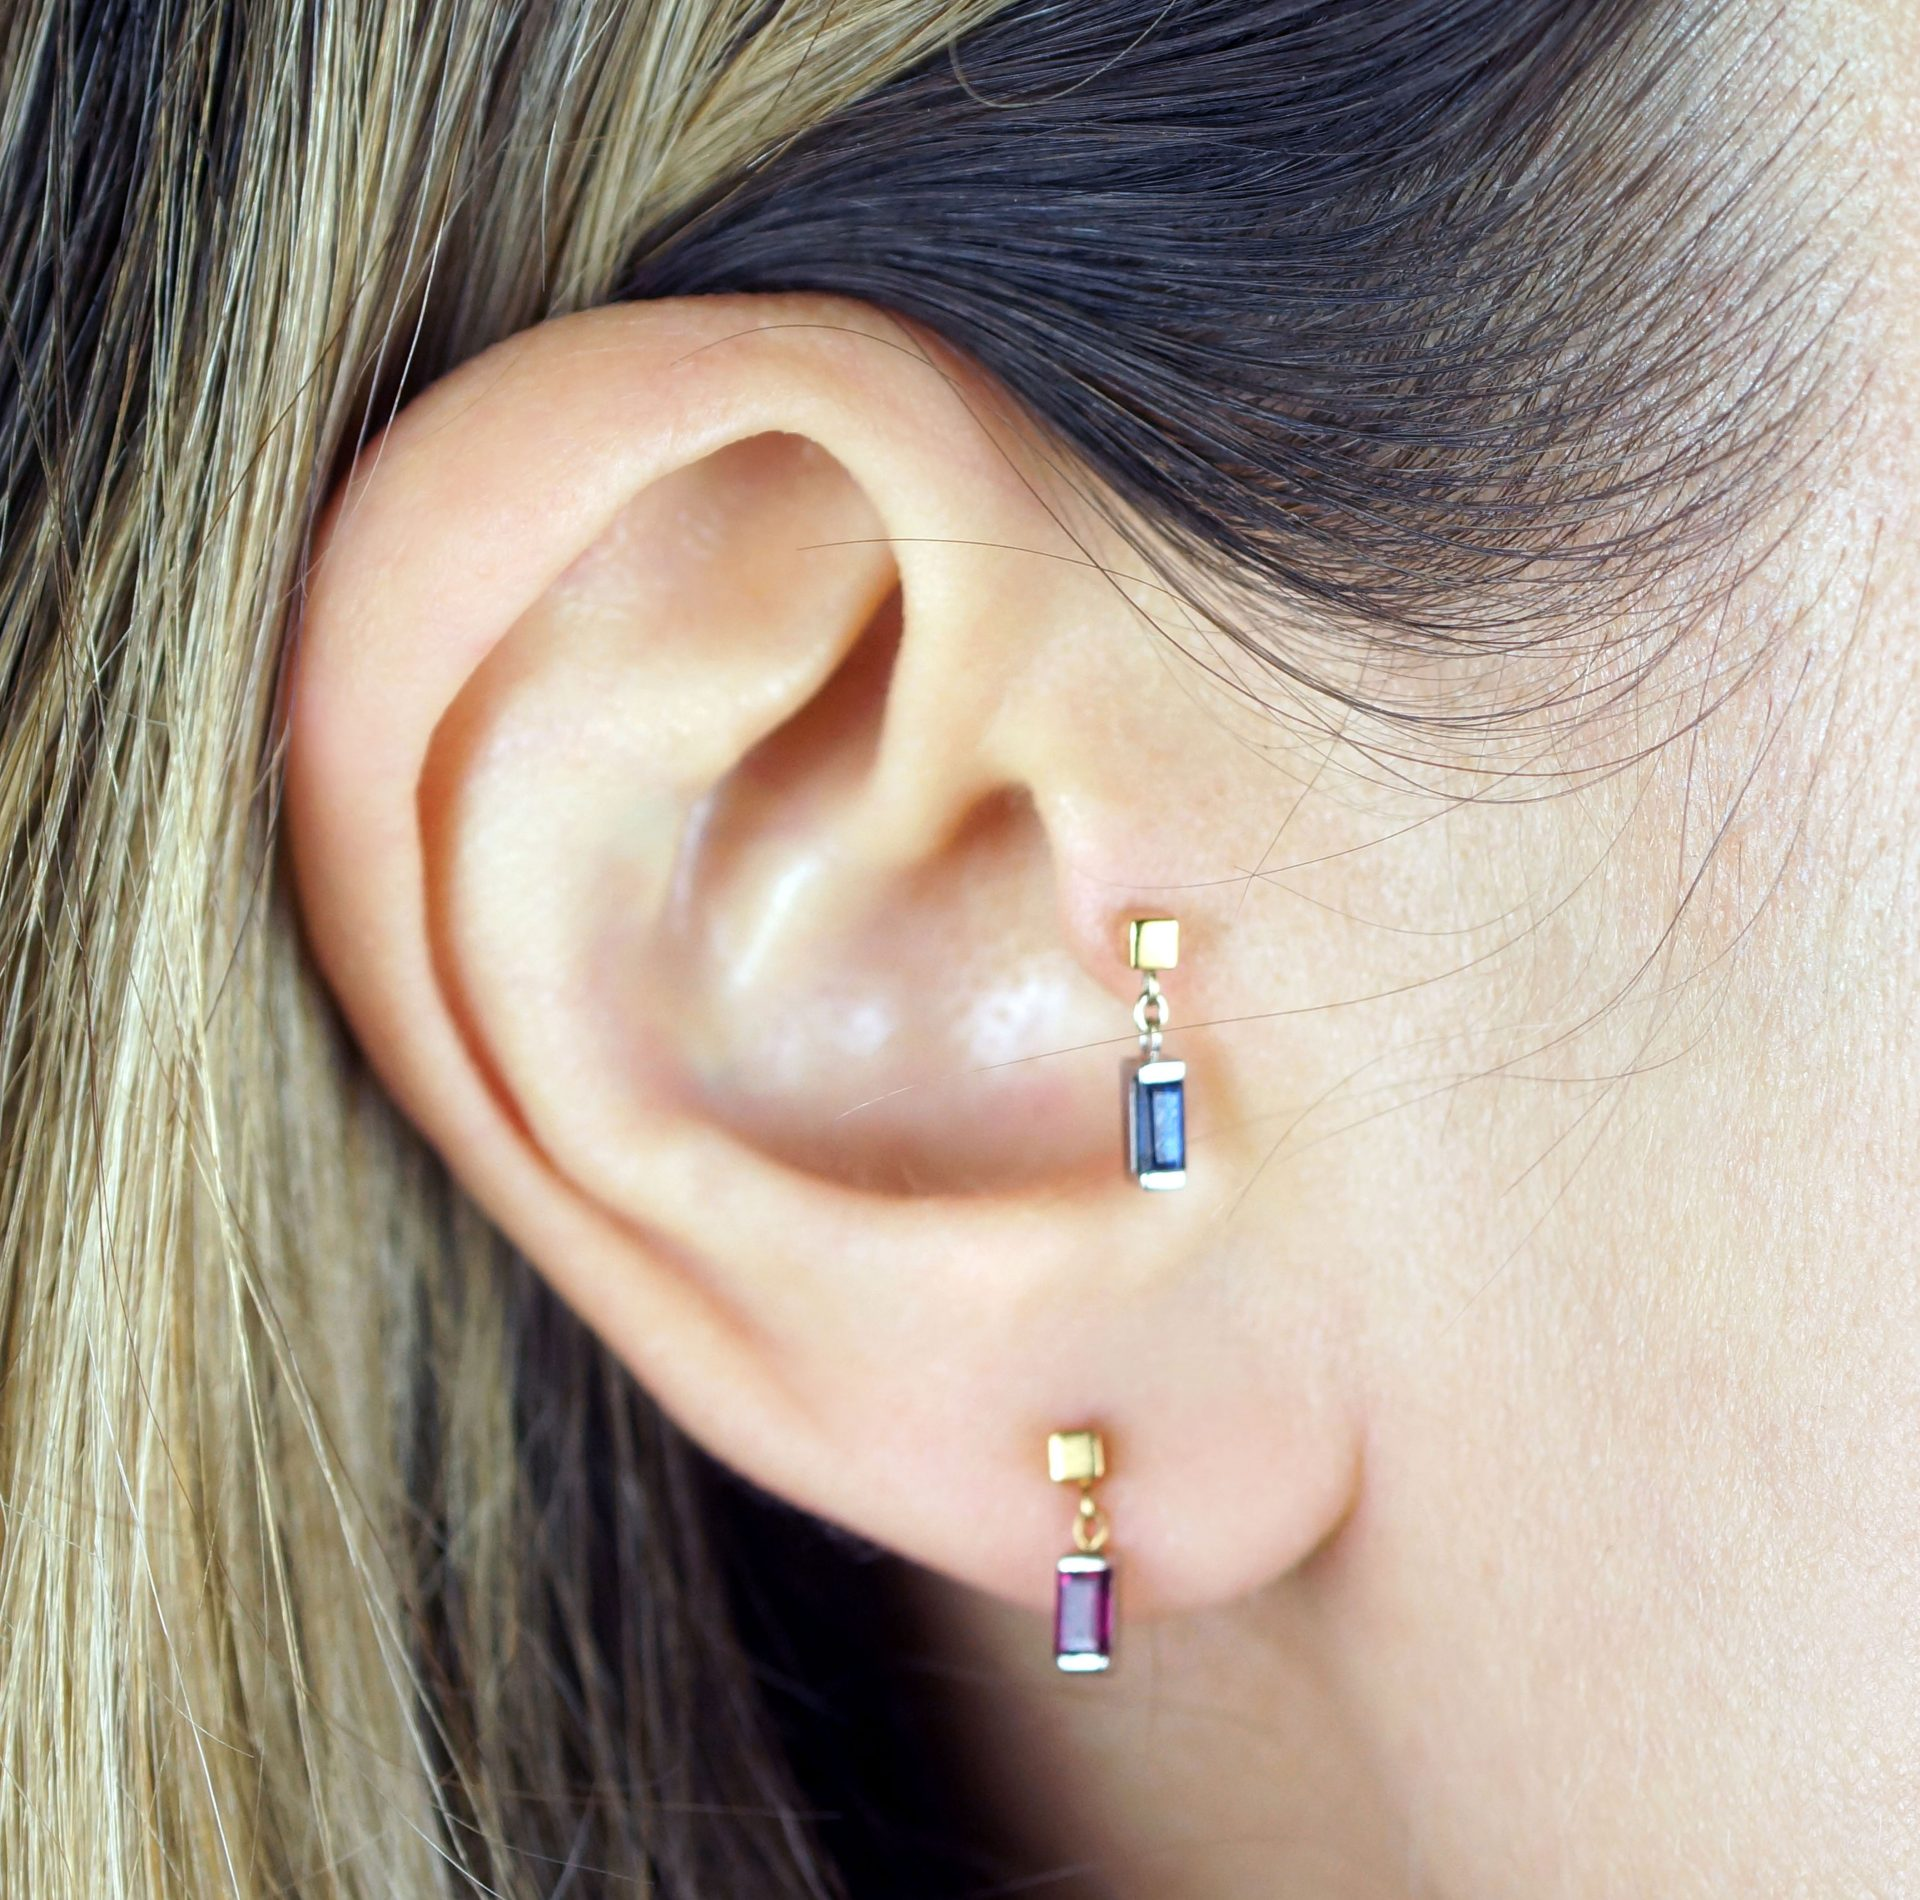 saphirre-cartilage-piercing-earring-handmade-from-18k-yellow-and-white-gold